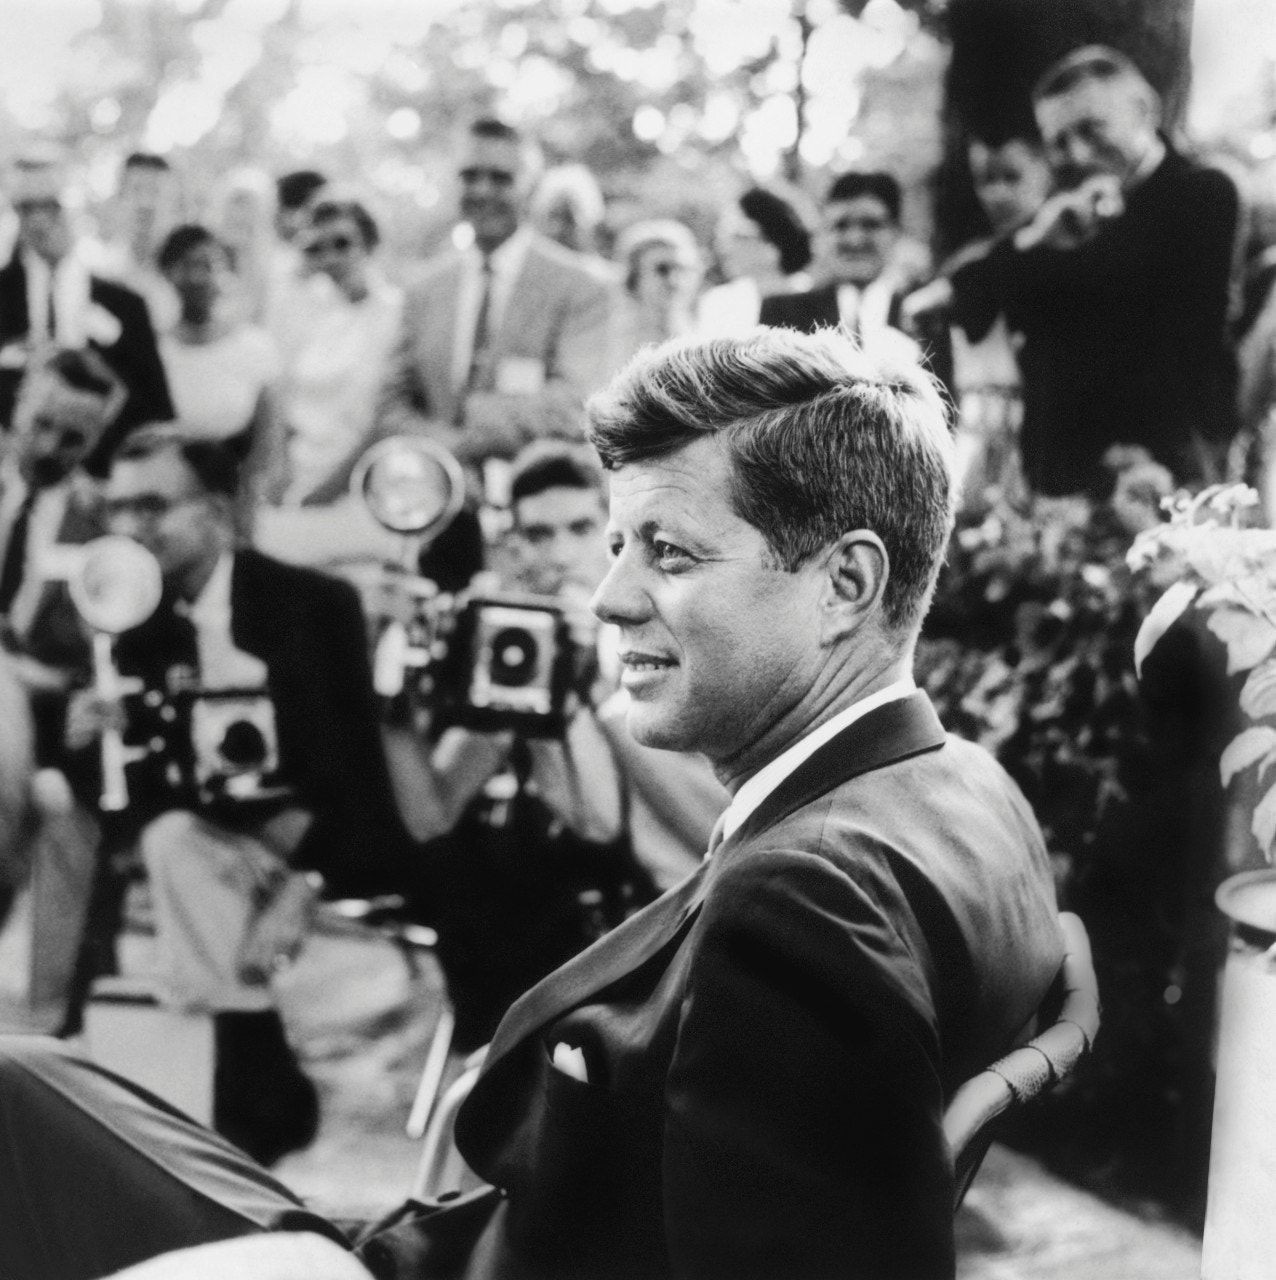 JFK's diary reveals fascination with Hitler, compared to 'legend'